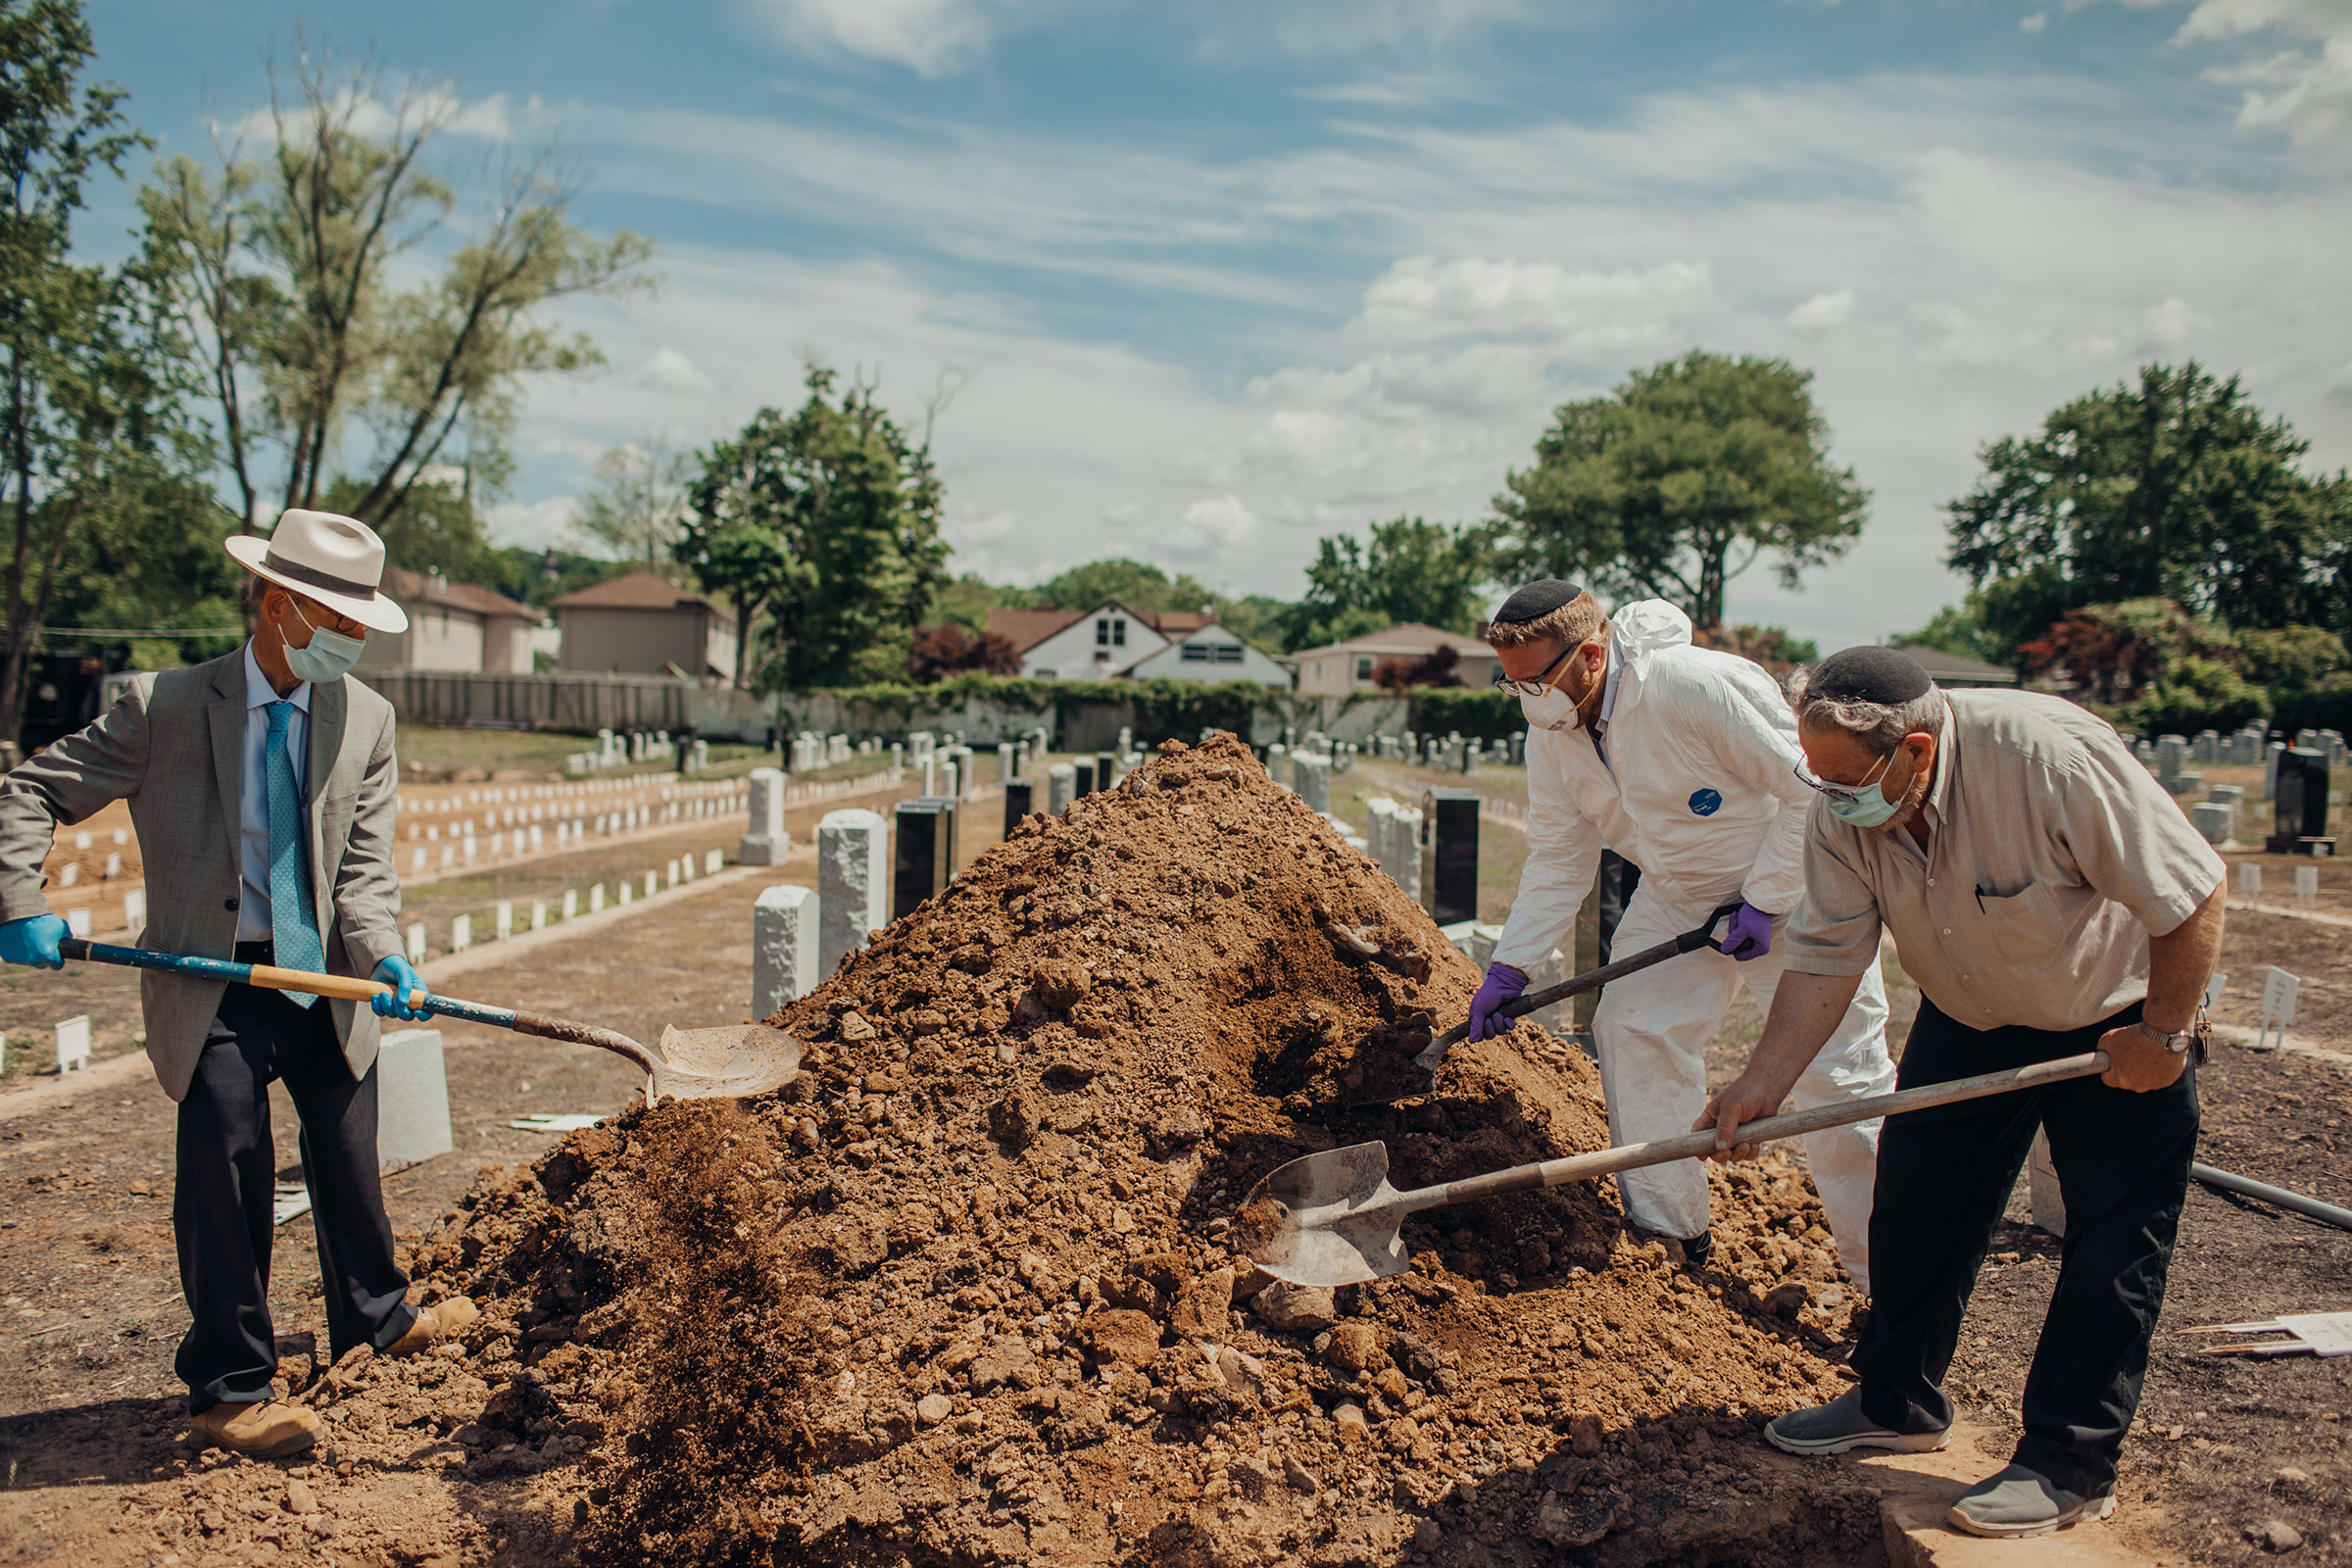 Rabbi Shmuel Plafker, an Orthodox chaplain, left, and volunteers place the last shovelfuls of dirt upon Ellen Torron's grave.